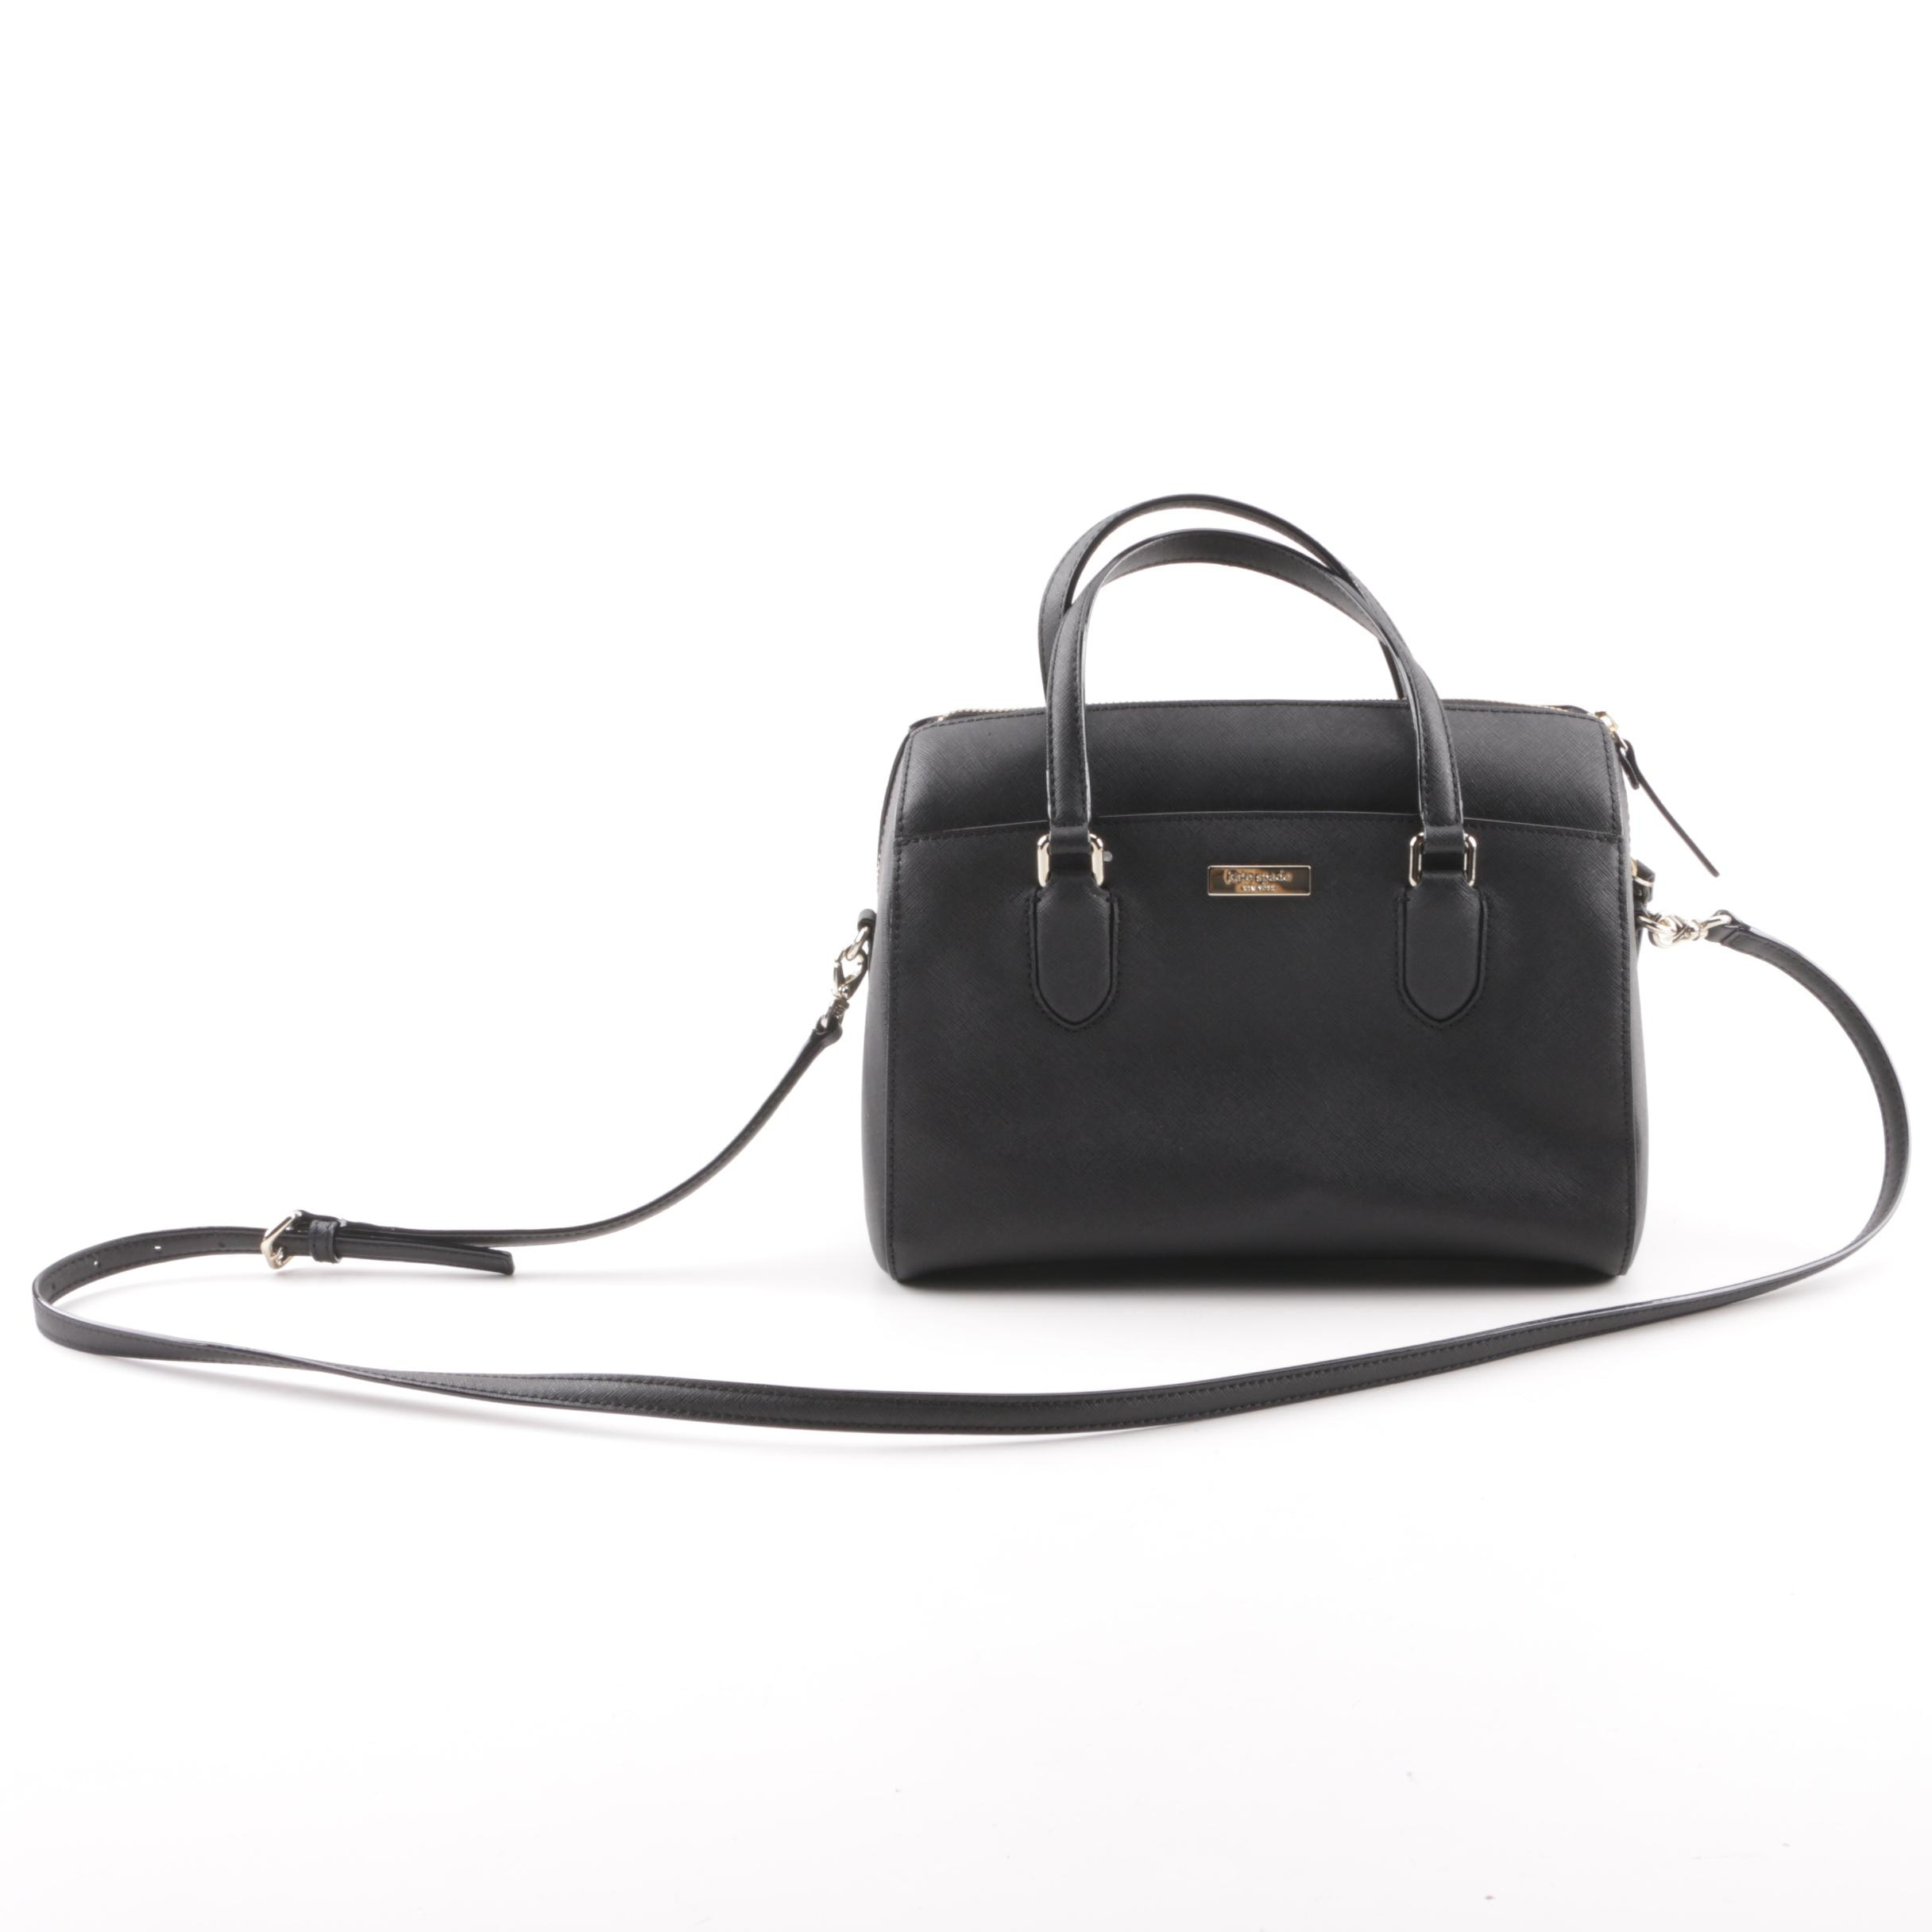 Kate Spade New York Black Leather Satchel